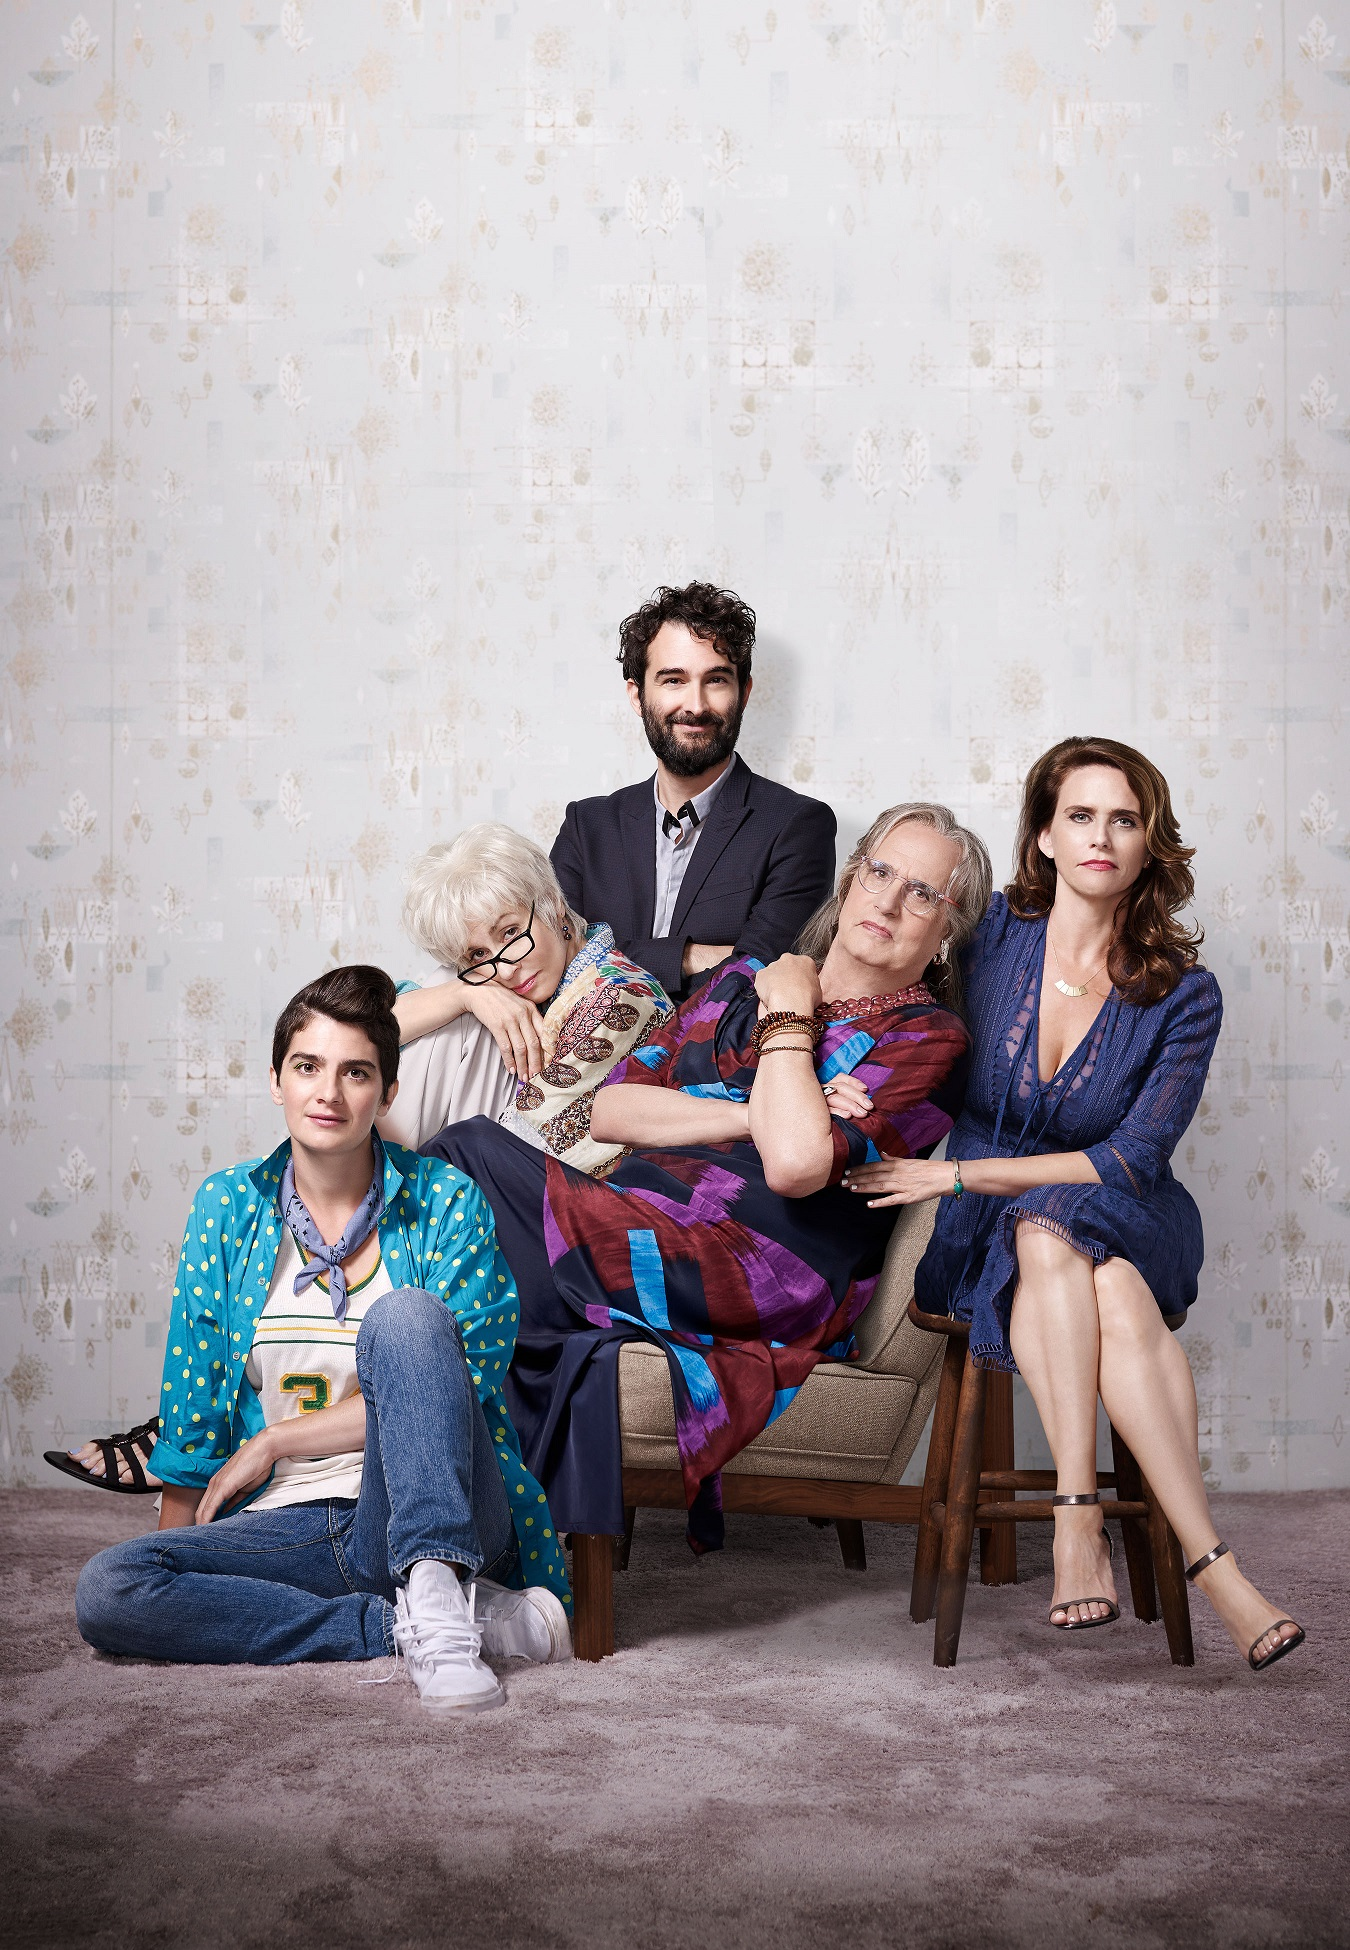 Transparent season 2 is the best TV show of the year - Vox